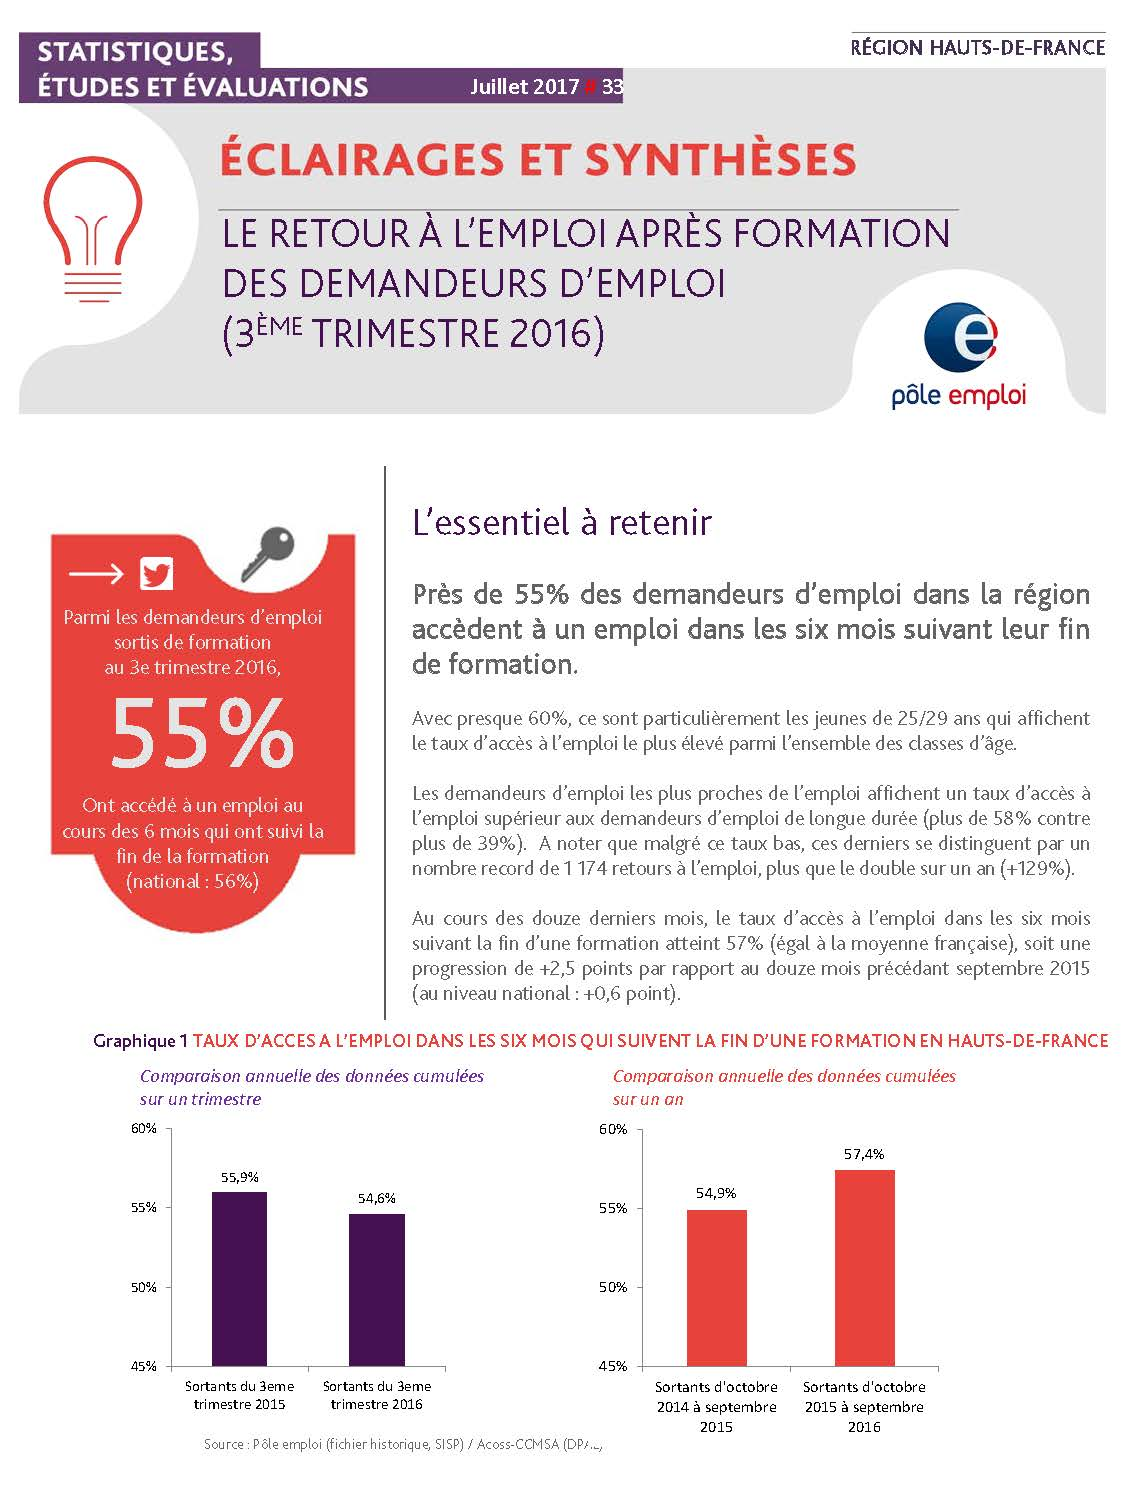 Acces_emploi_Formation_3T2016_Vdef2_Page_1